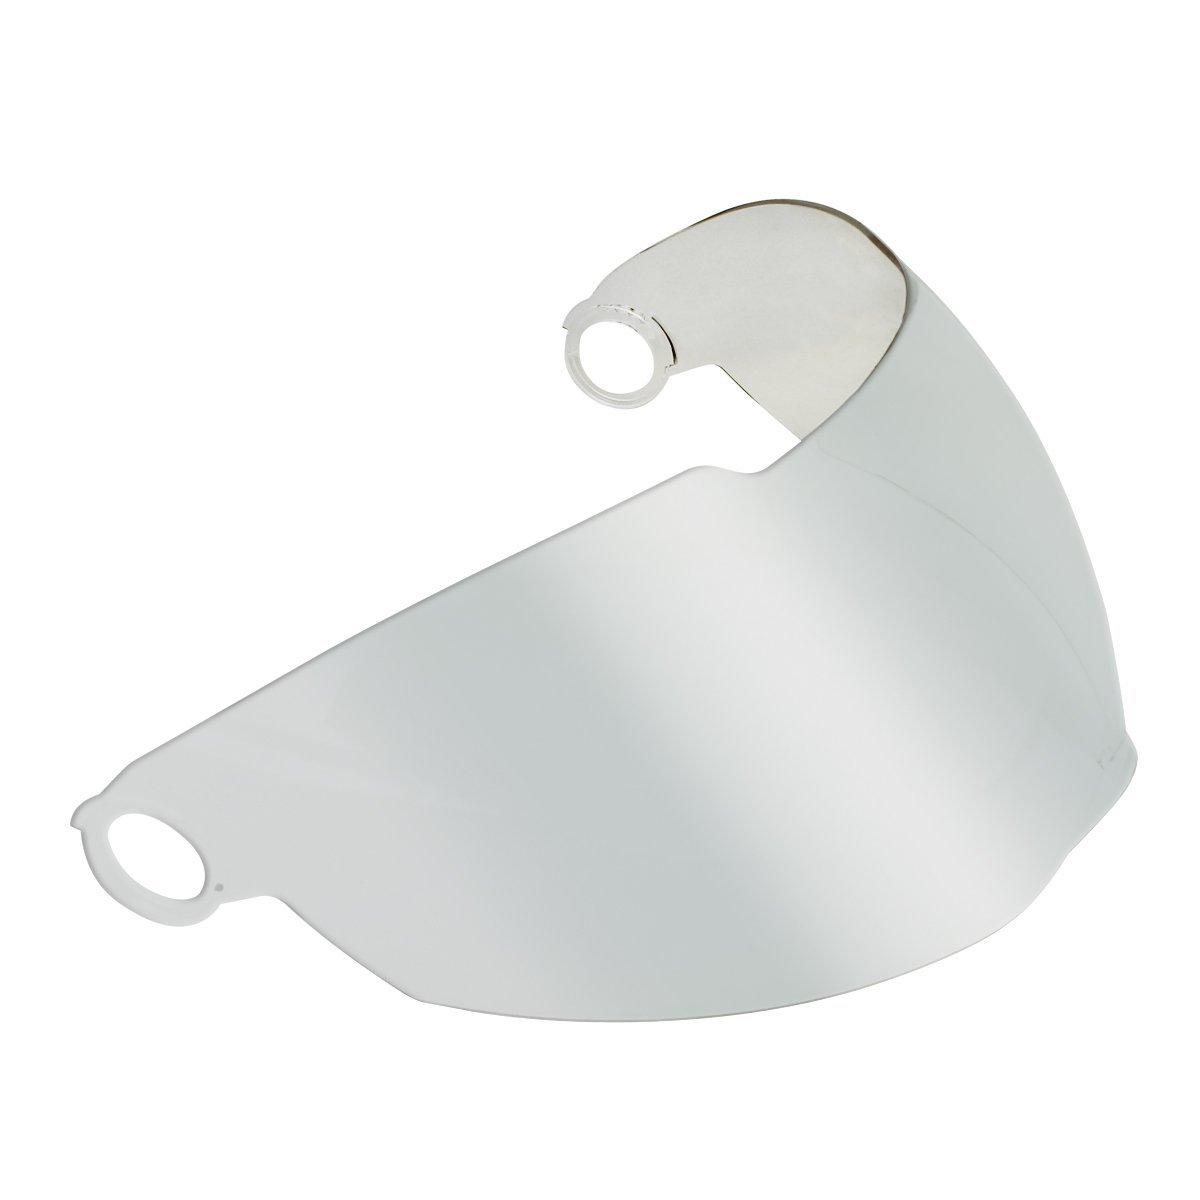 262c92a1 Clear Replacement Shield for Hawk ST-1198 Motorcycle Helmet - One Size